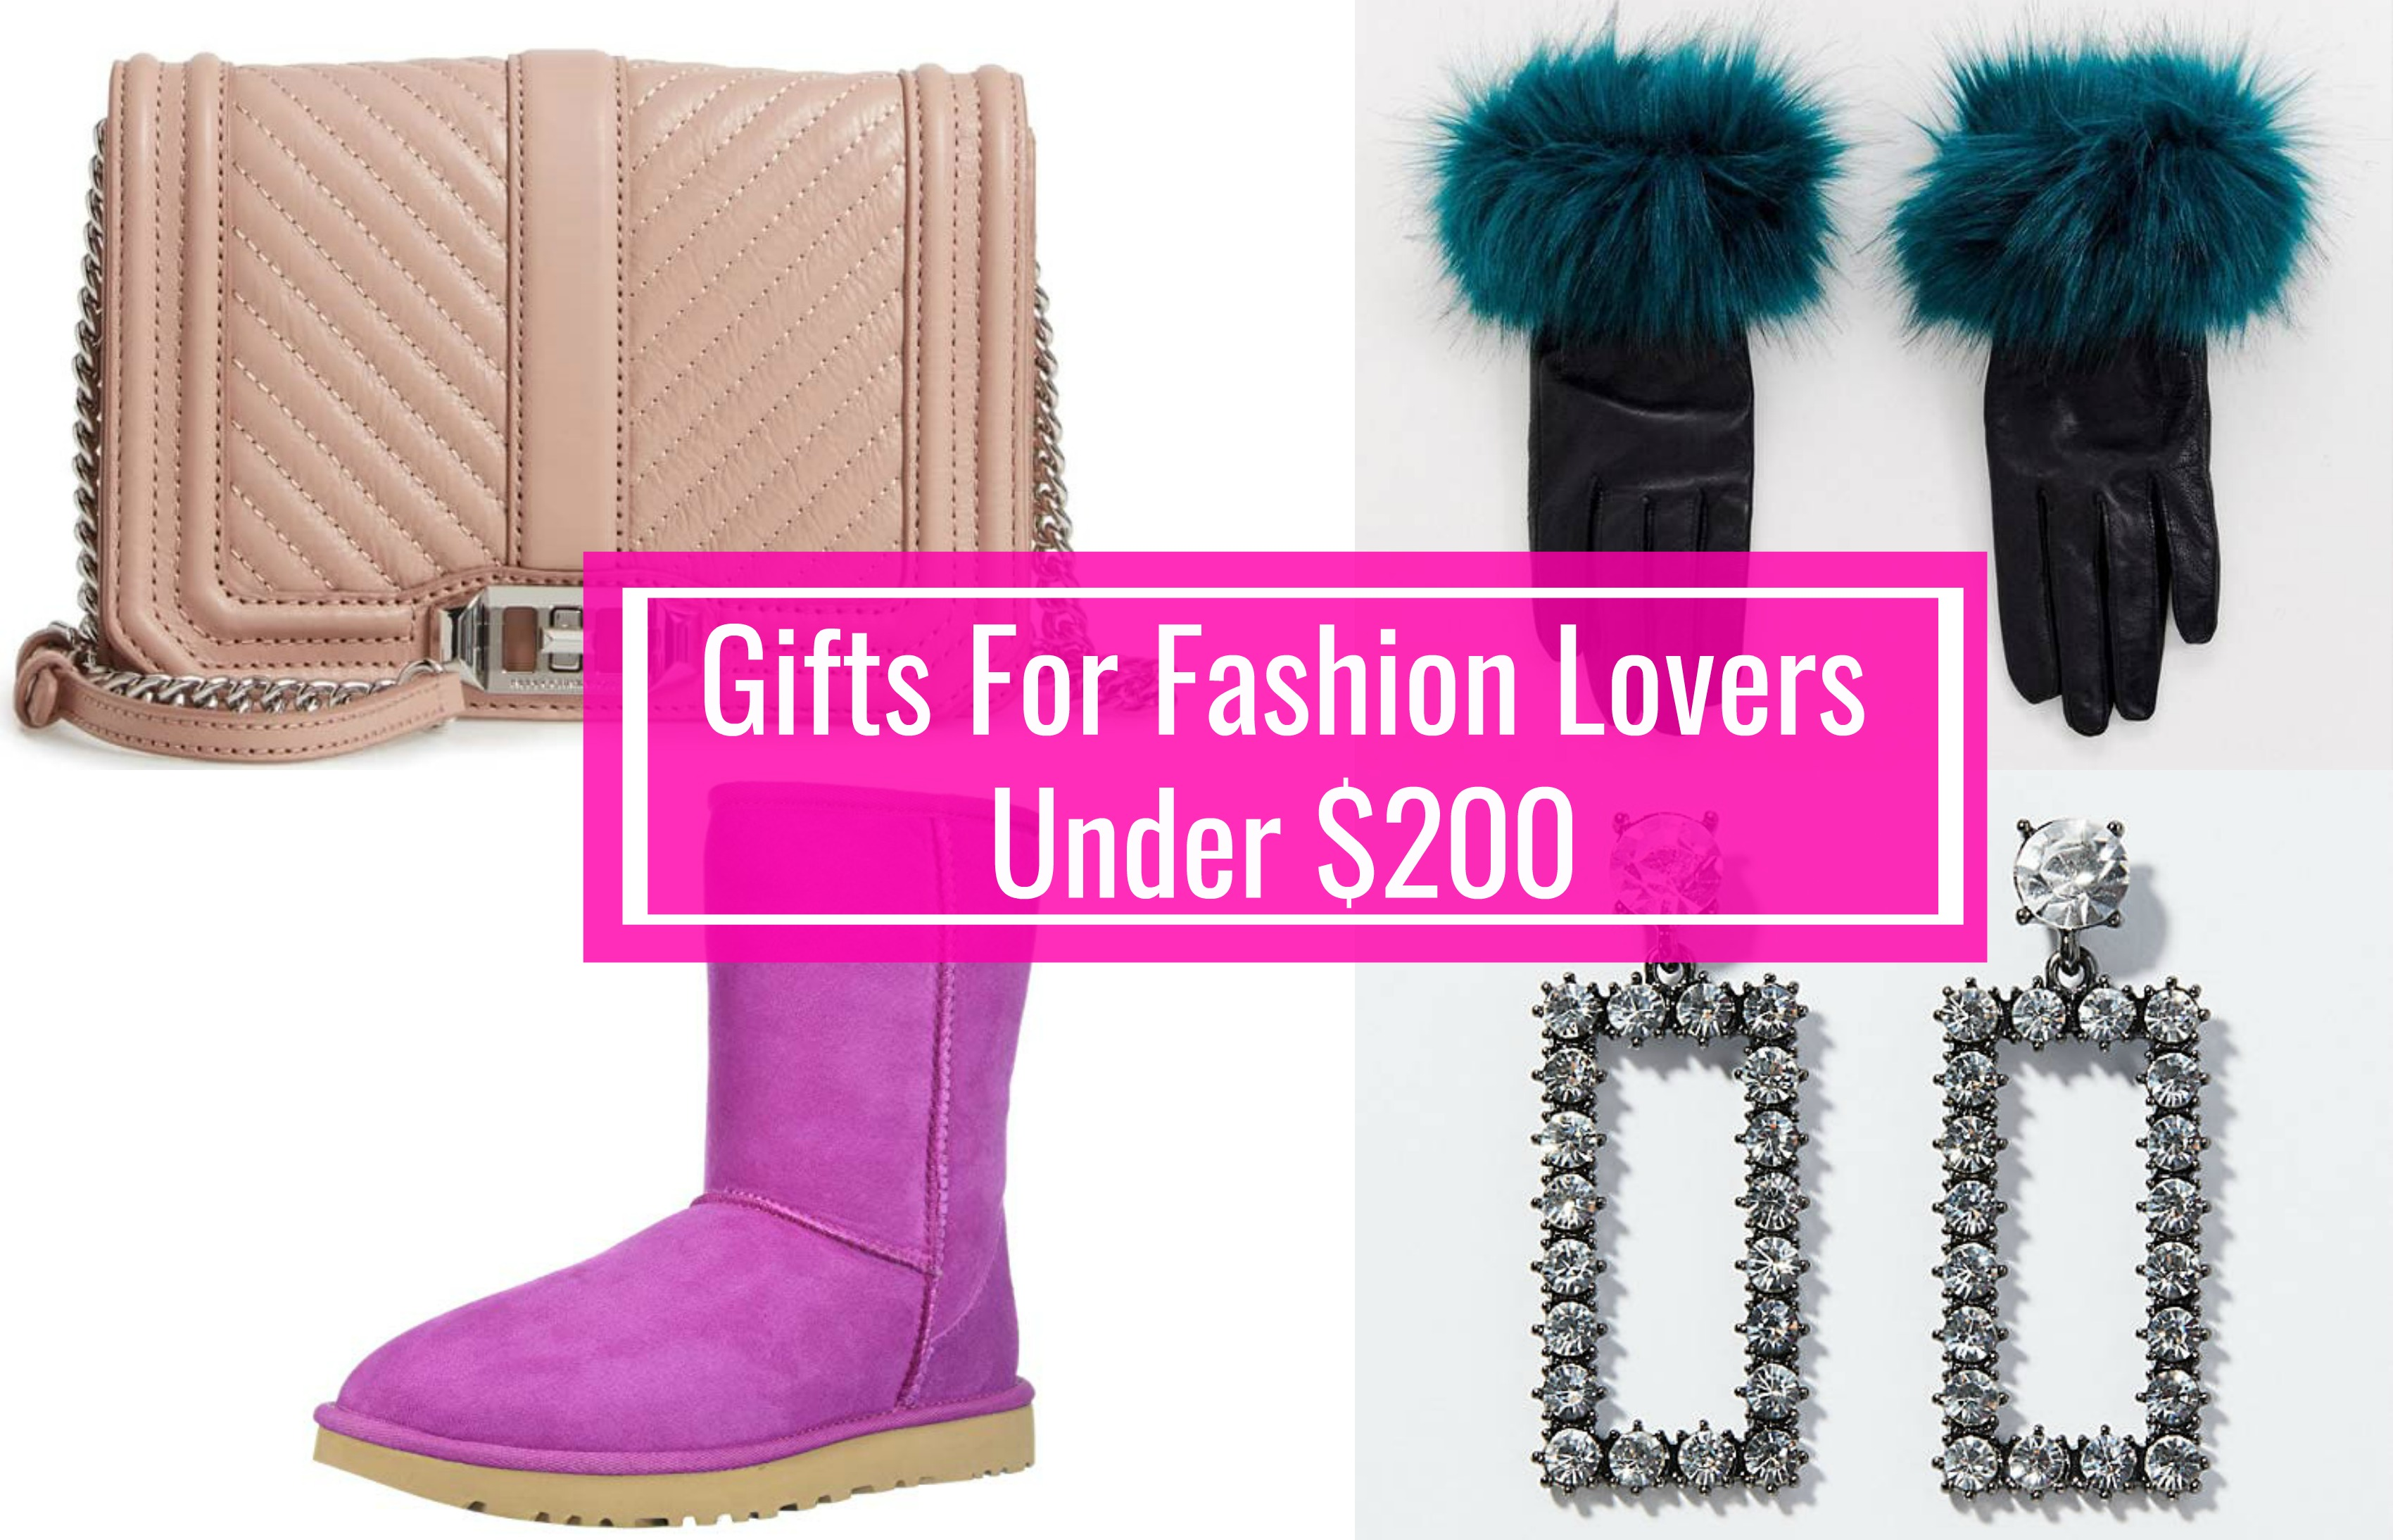 gift ideas for fashion lovers under $200